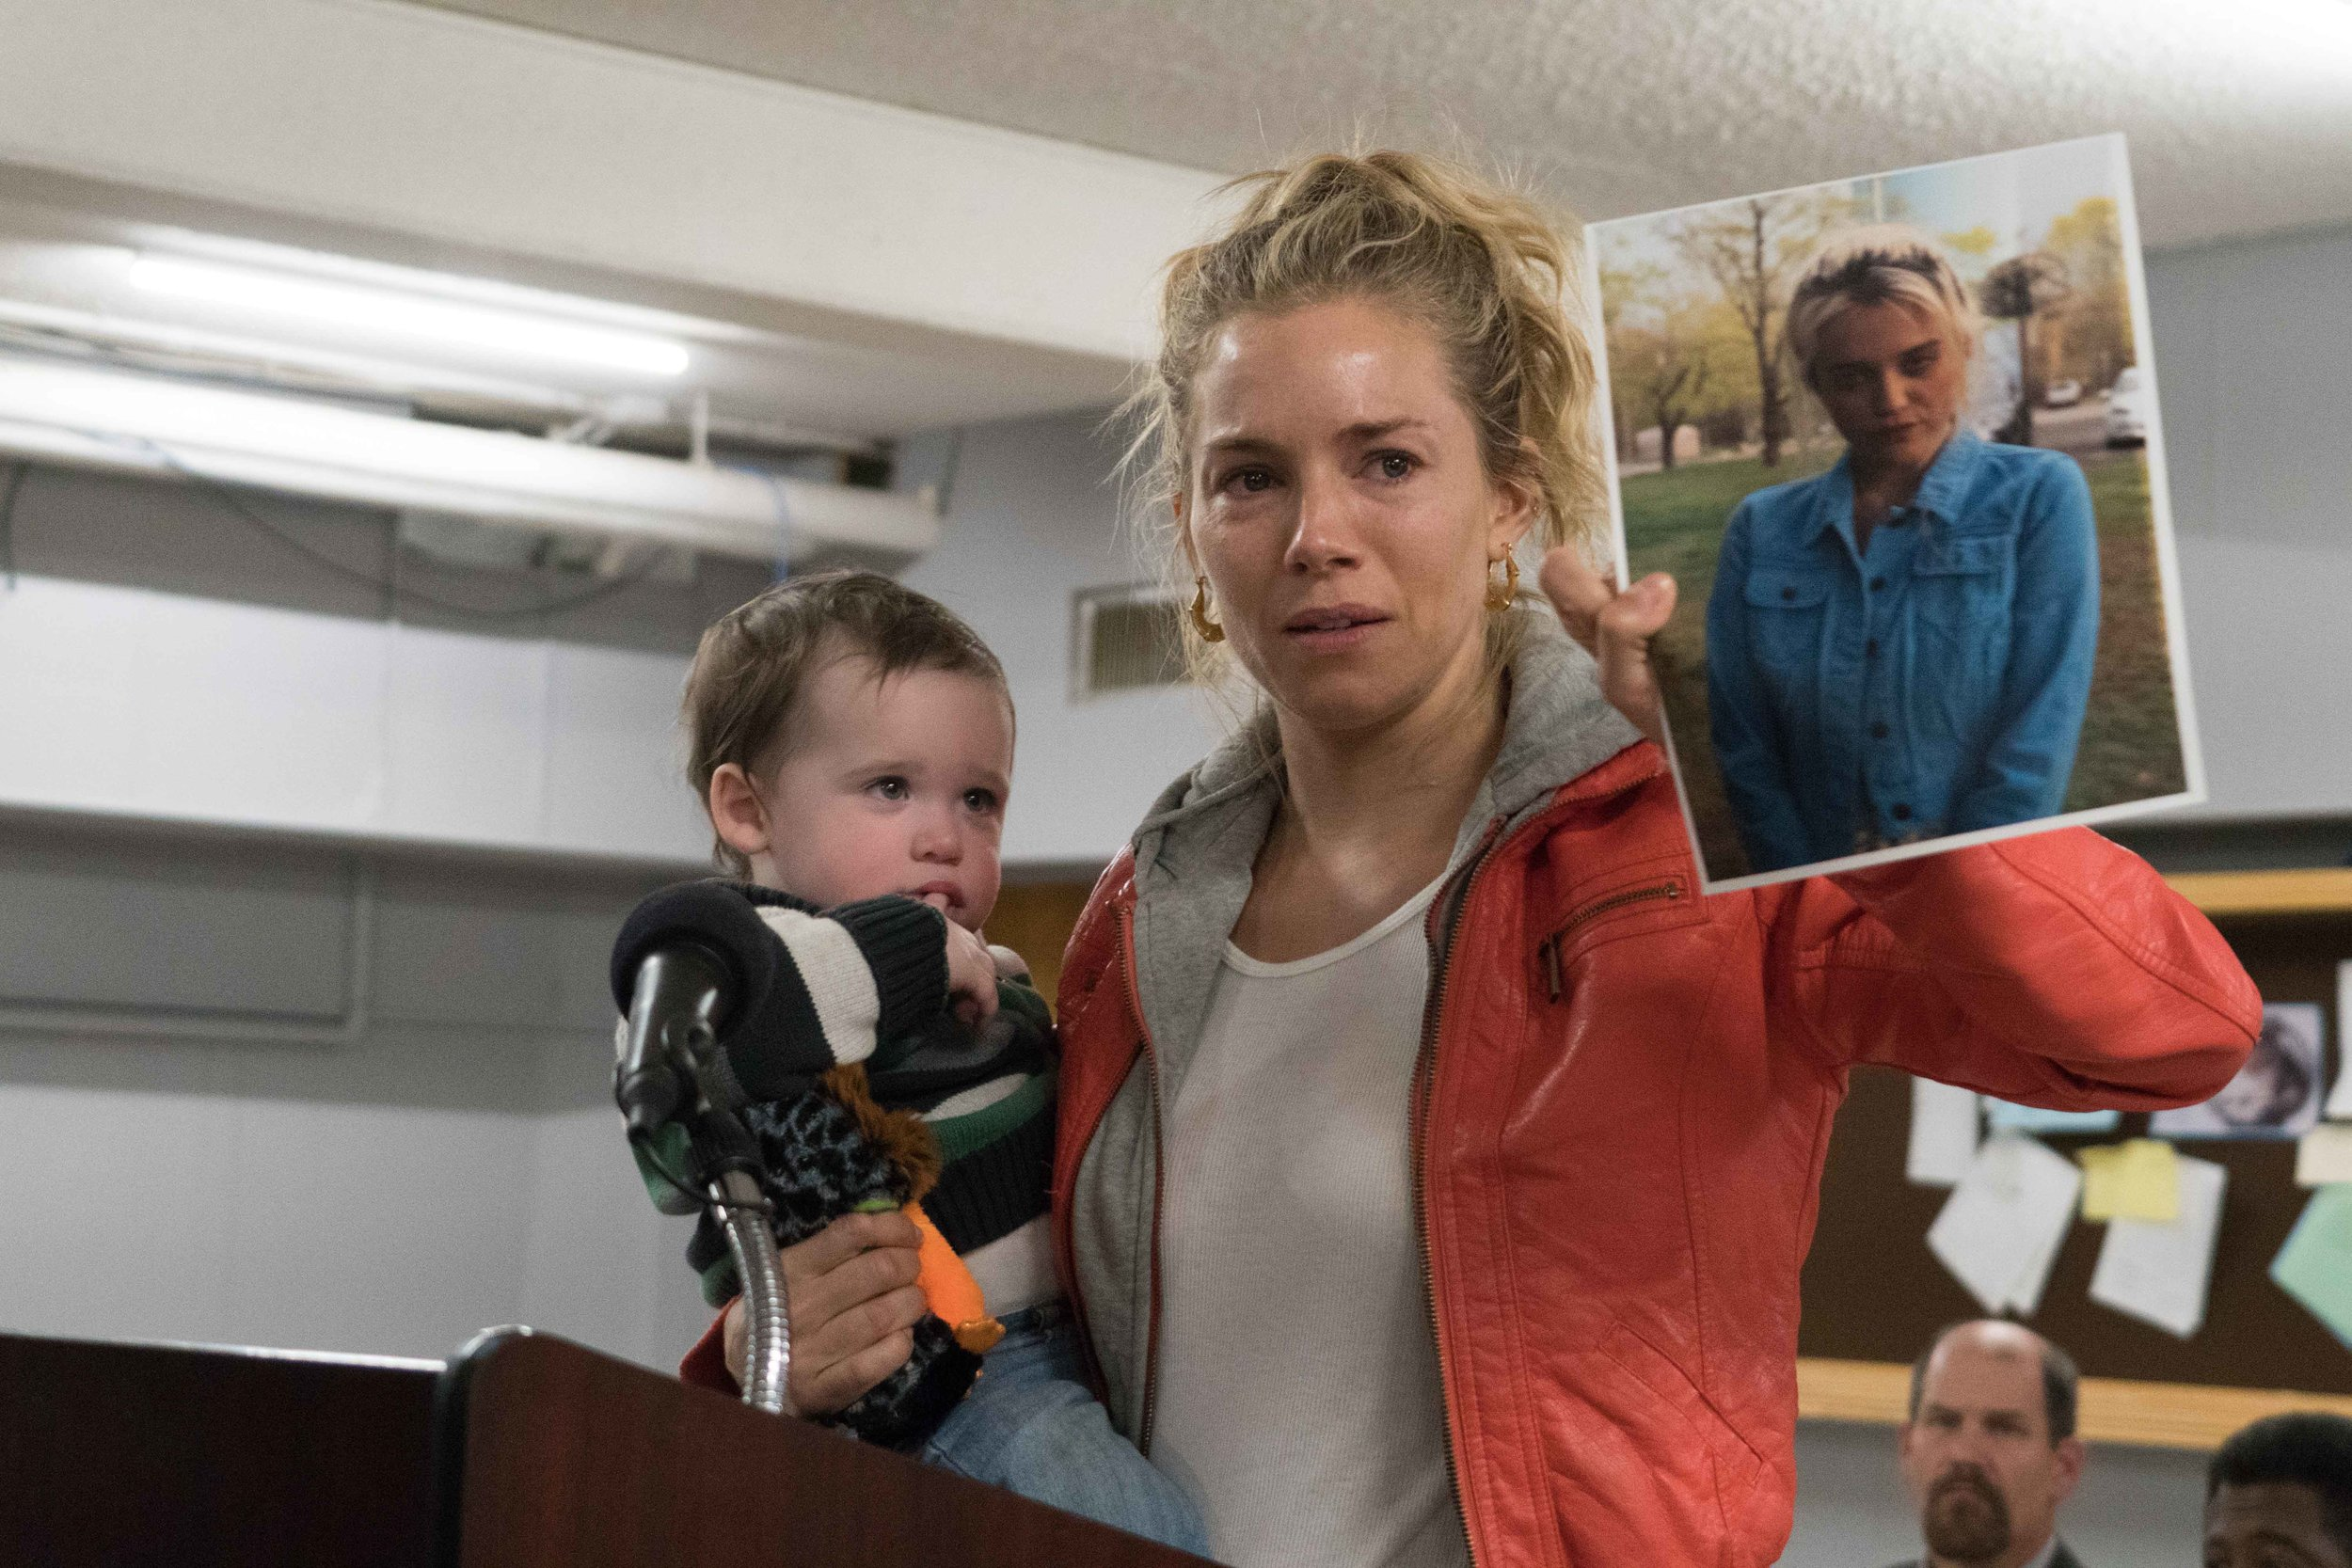 "Debra Callahan (Sienna Miller) holds her grandson in one hand and a photo of her missing daughter, Bridget (Sky Ferreira) in the other, in a scene from the drama ""American Woman."" (Photo by Seacia Pavao, courtesy of Roadside Attractions.)"